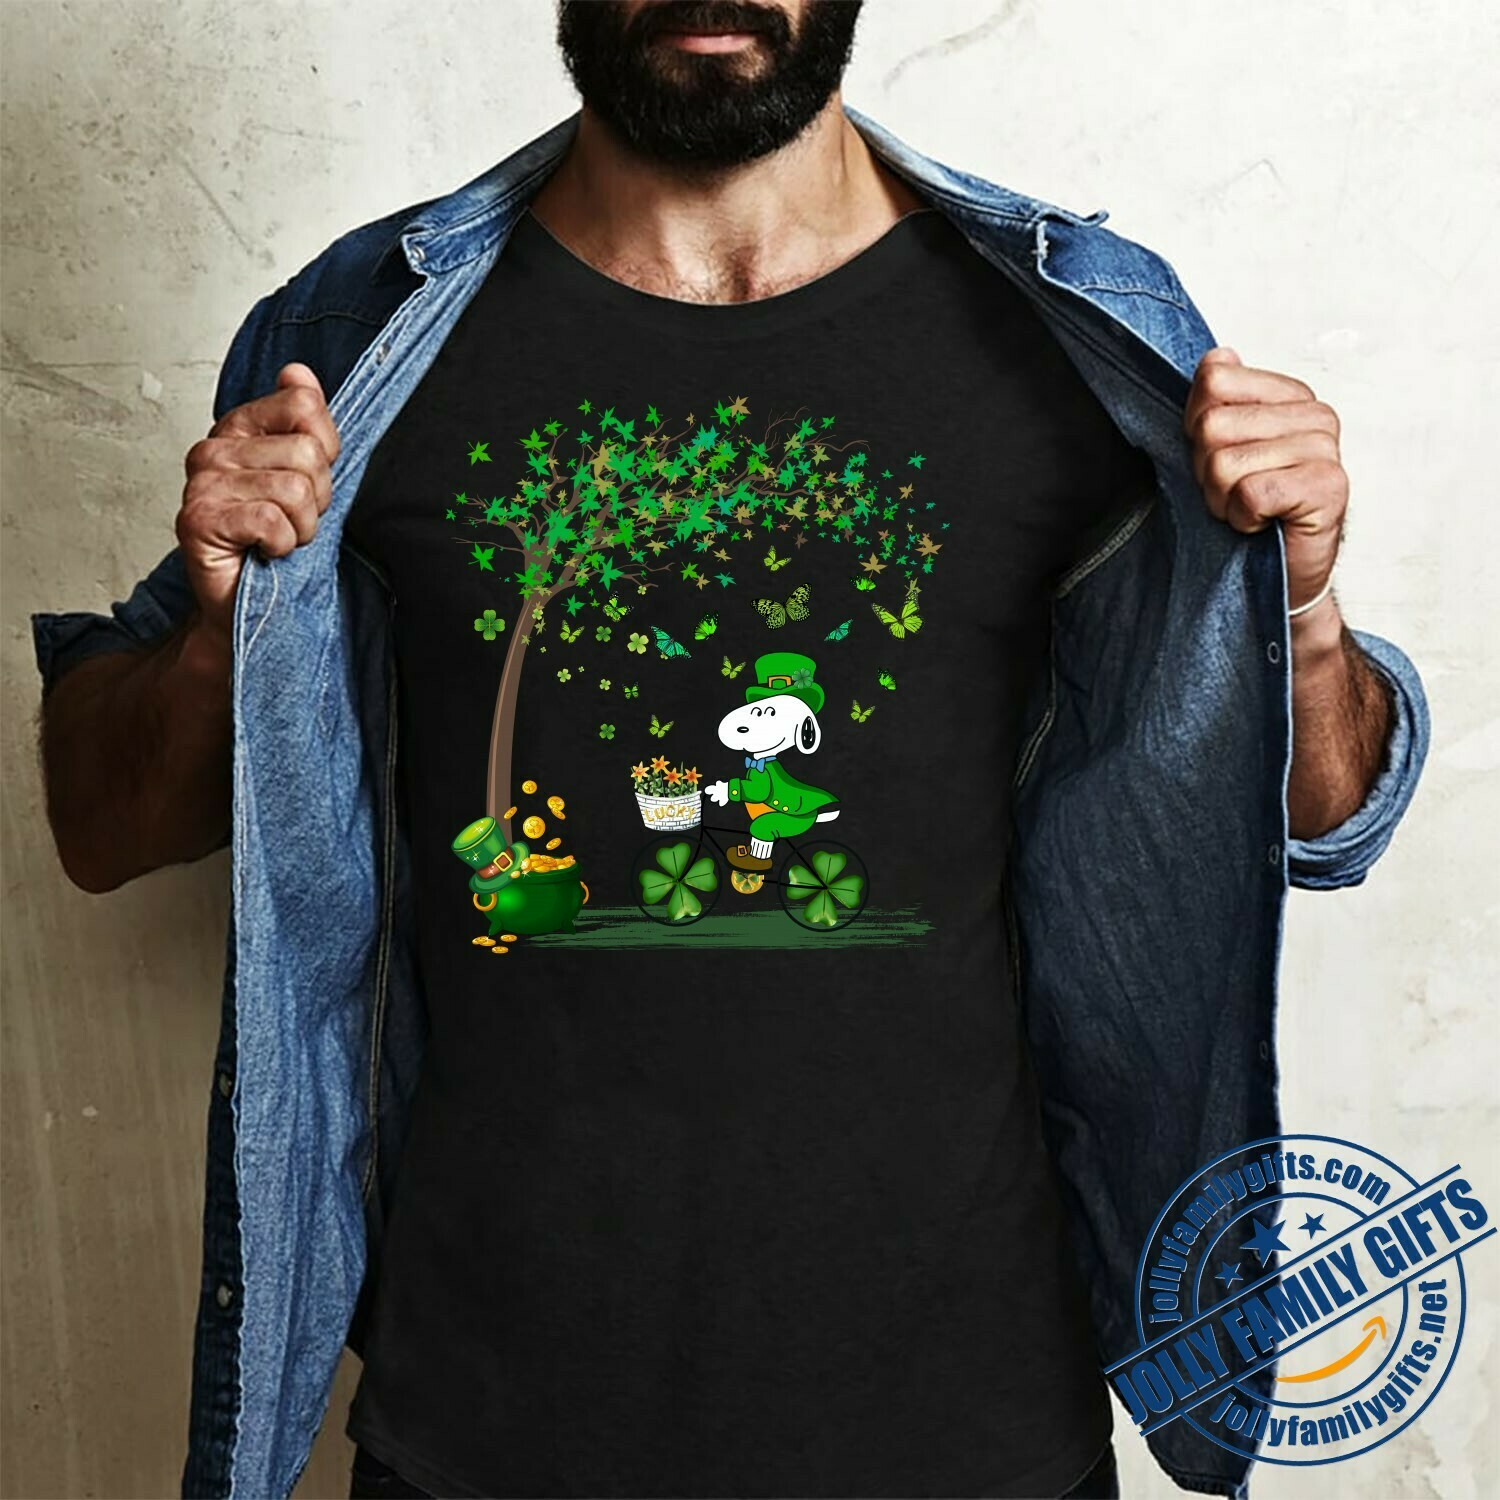 Irish Snoopy Driving Bicycle St. Patrick's Day Peanuts Leprechauns Lucky Charm Pots of Gold Shamrocks  Unisex T-Shirt Hoodie Sweatshirt Sweater Plus Size for Ladies Women Men Kids Youth Gifts Tee